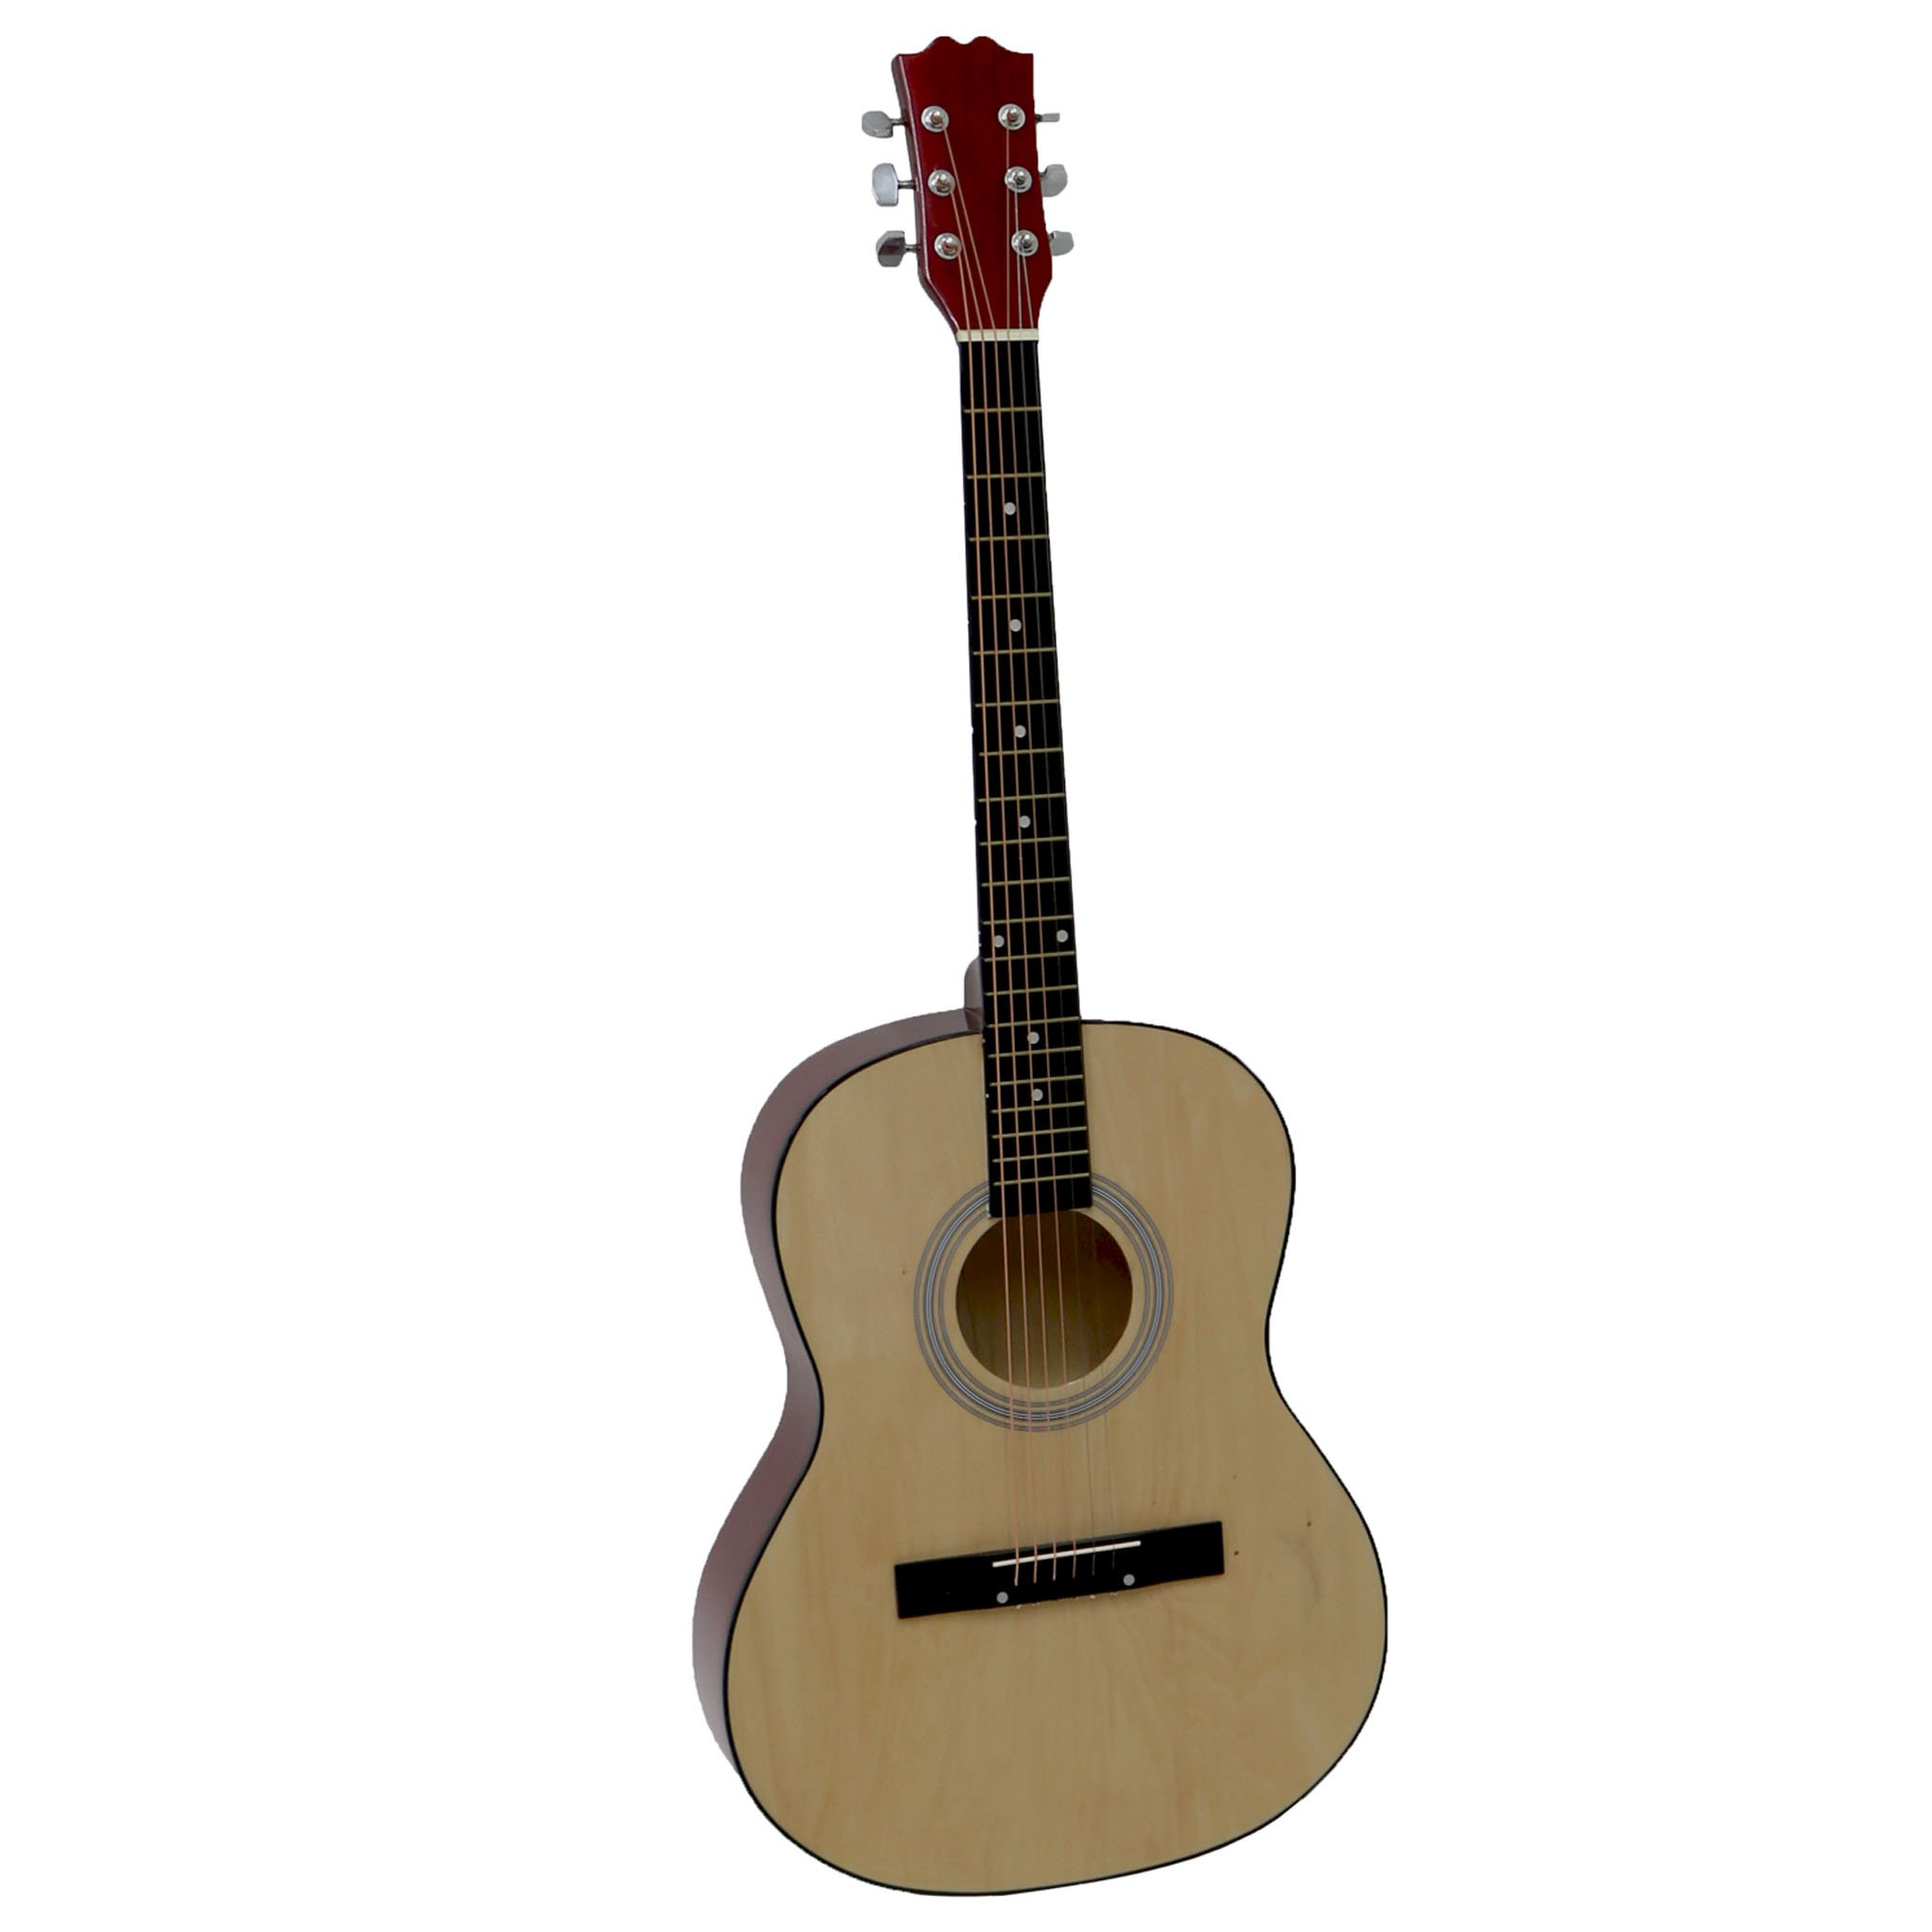 "39"" Full Size 4/4 6 String Steel Strung Acoustic Guitar"